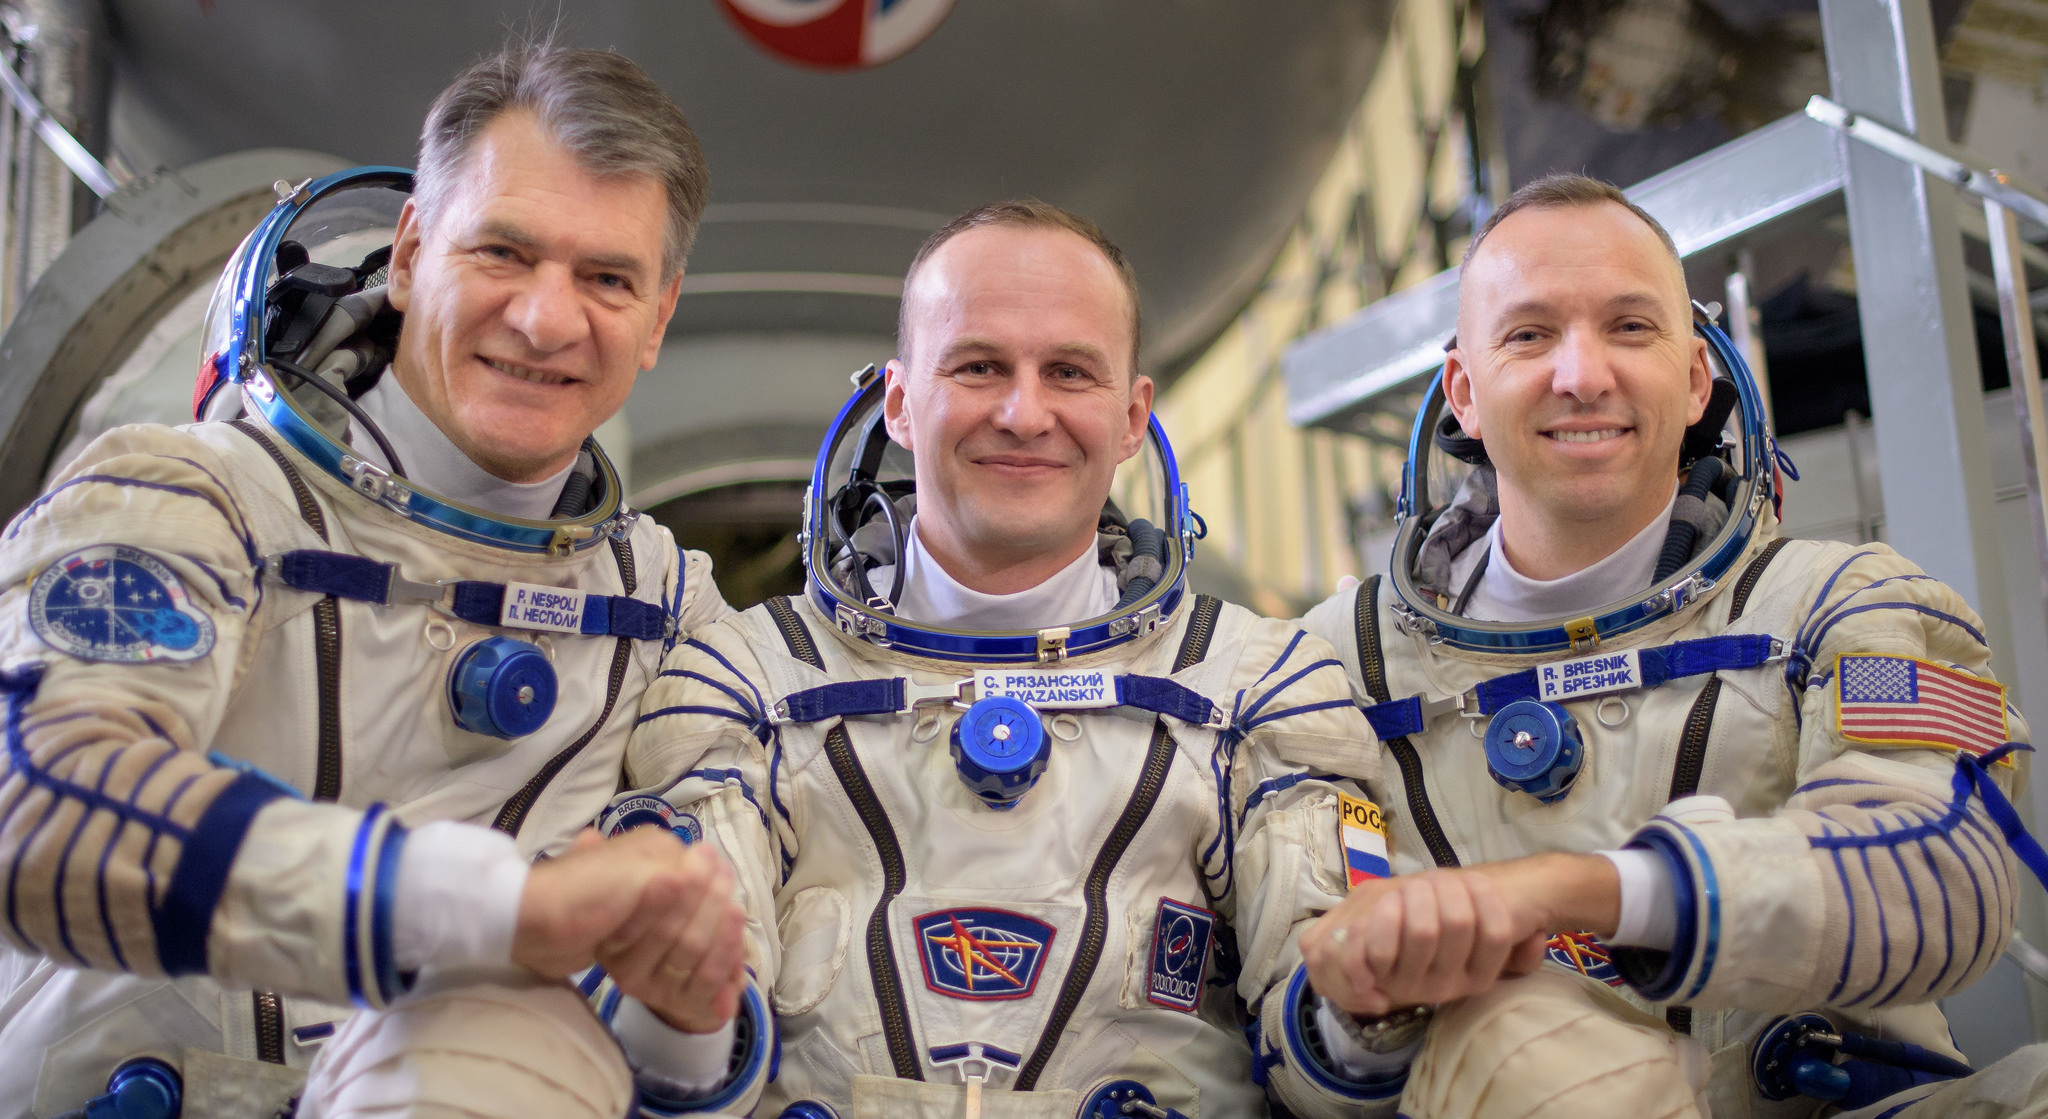 Expedition 52-53 crew members